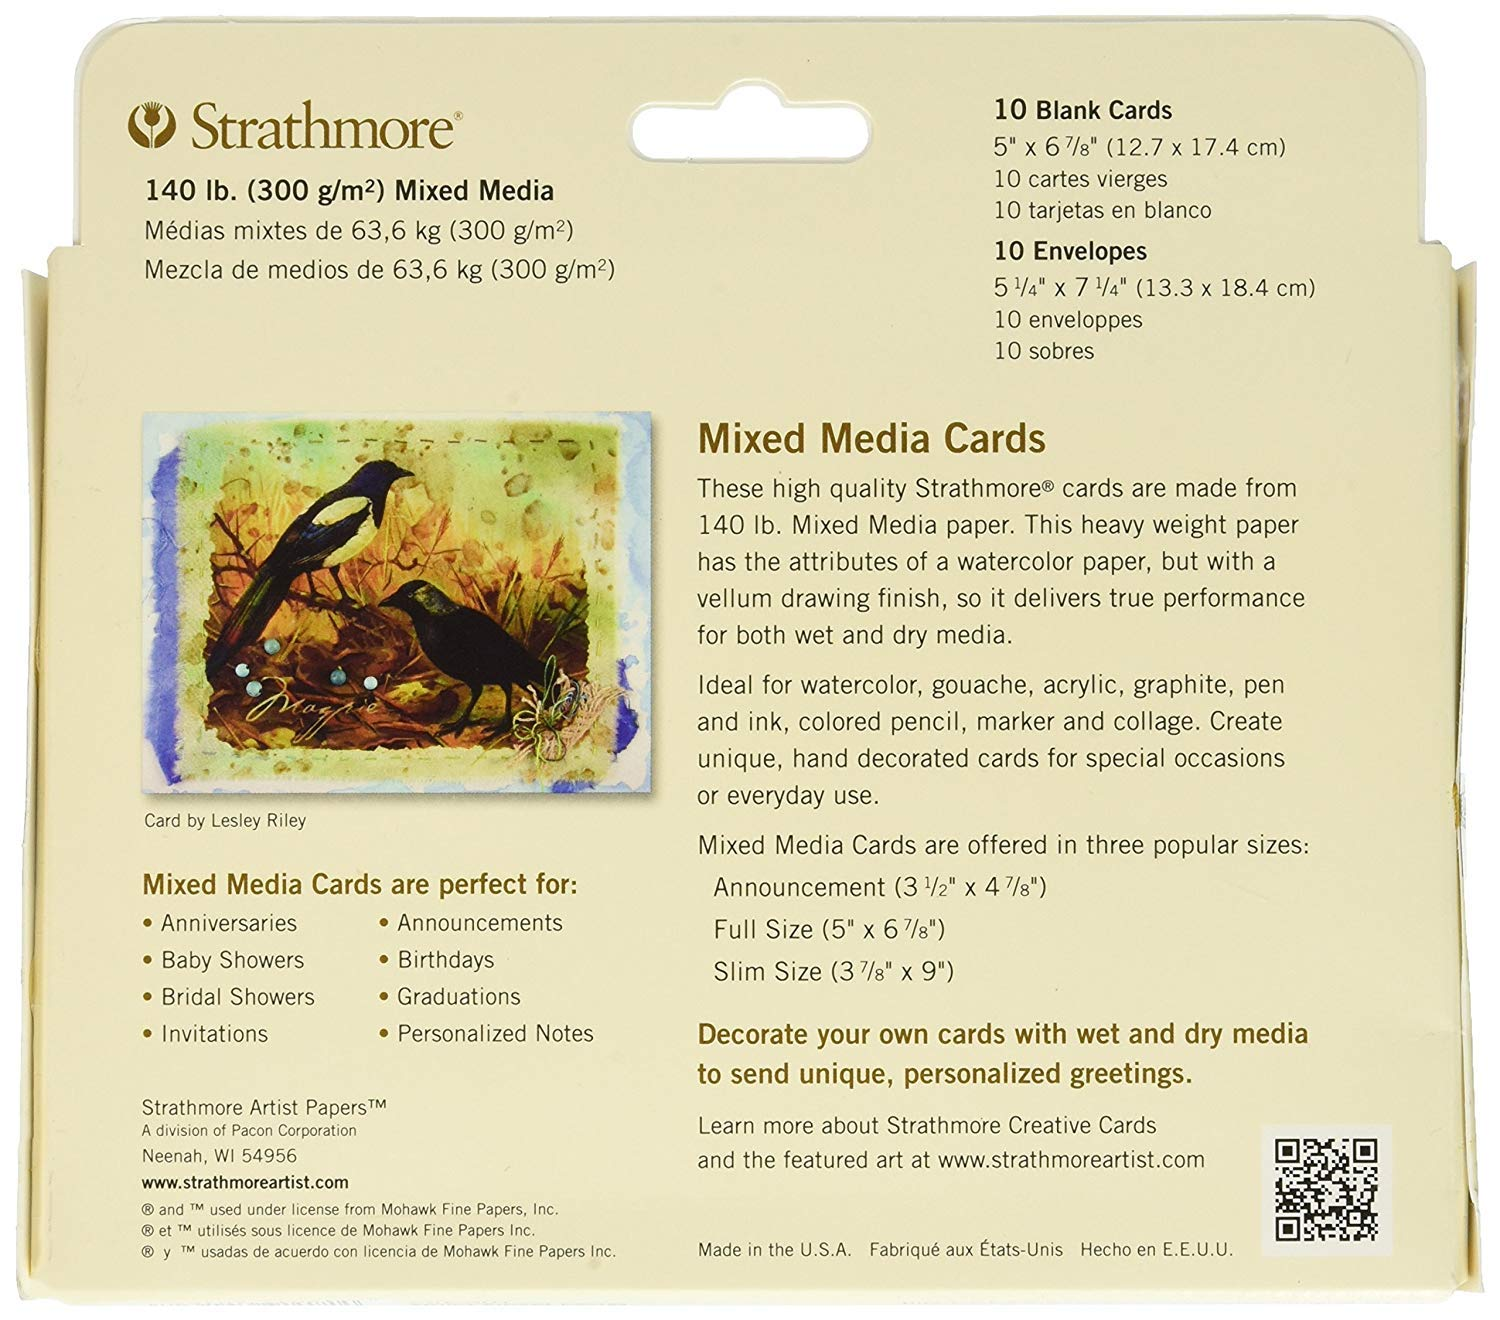 Strathmore 105-462-1 Mixed Media Cards